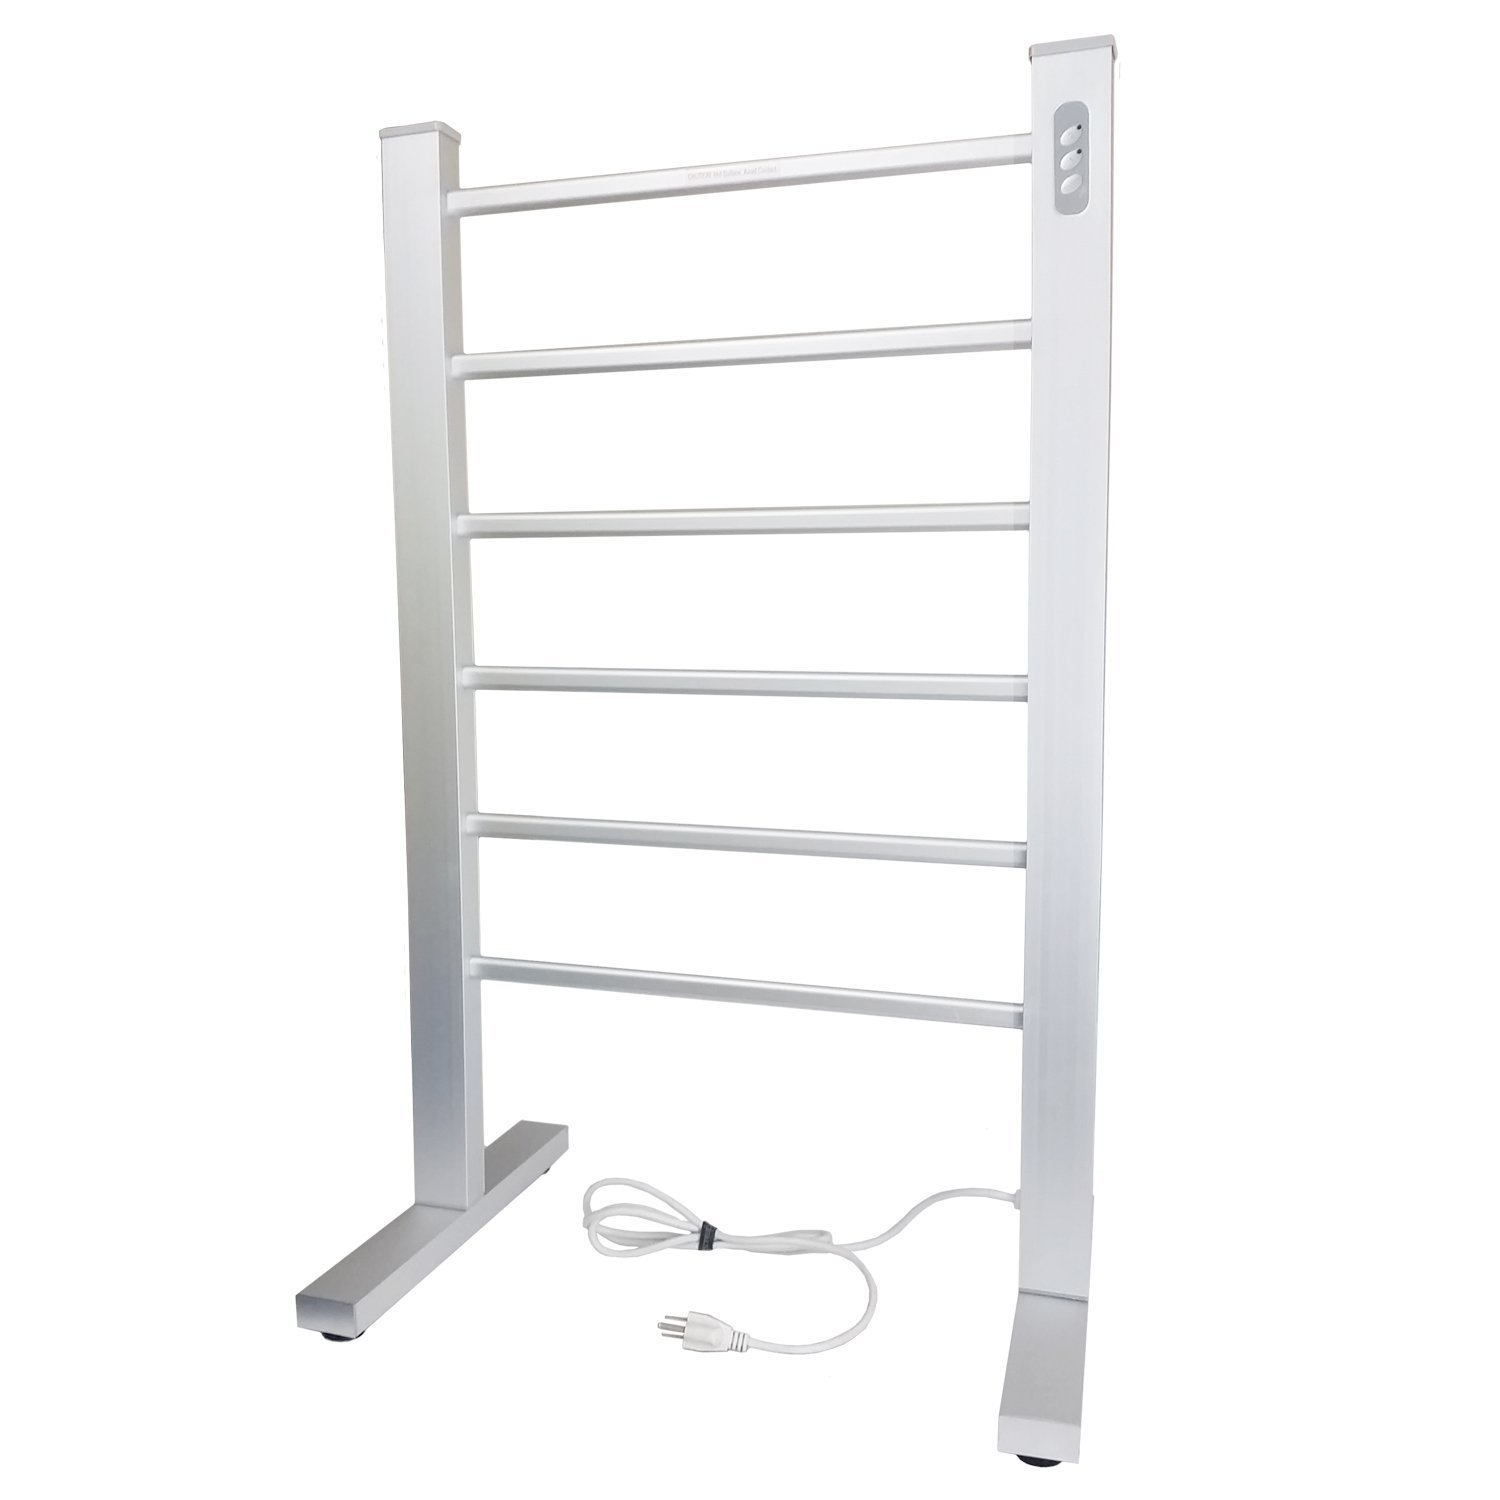 Towel Heater Rack: Electric Towel Warmer With Dual Temperature Auto Shut Off